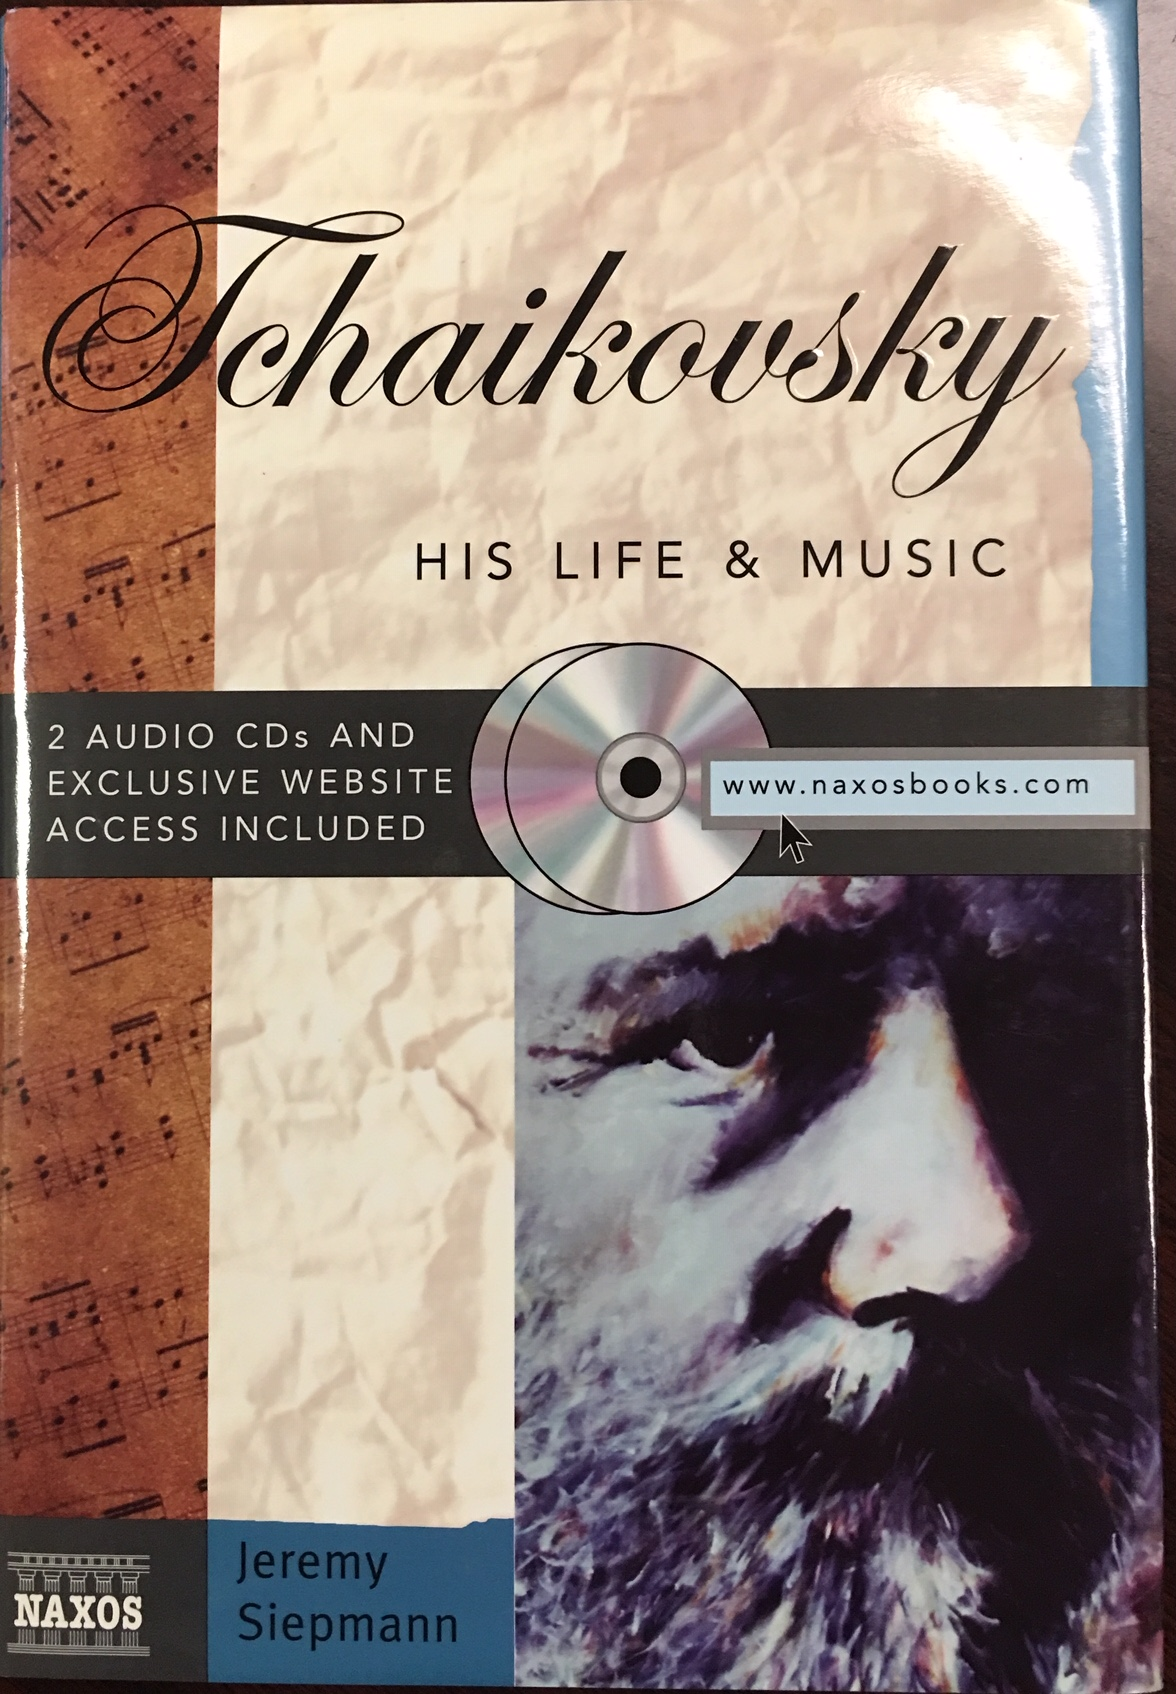 Image for Tchaikovsky: His Life & Music - with 2 CD's